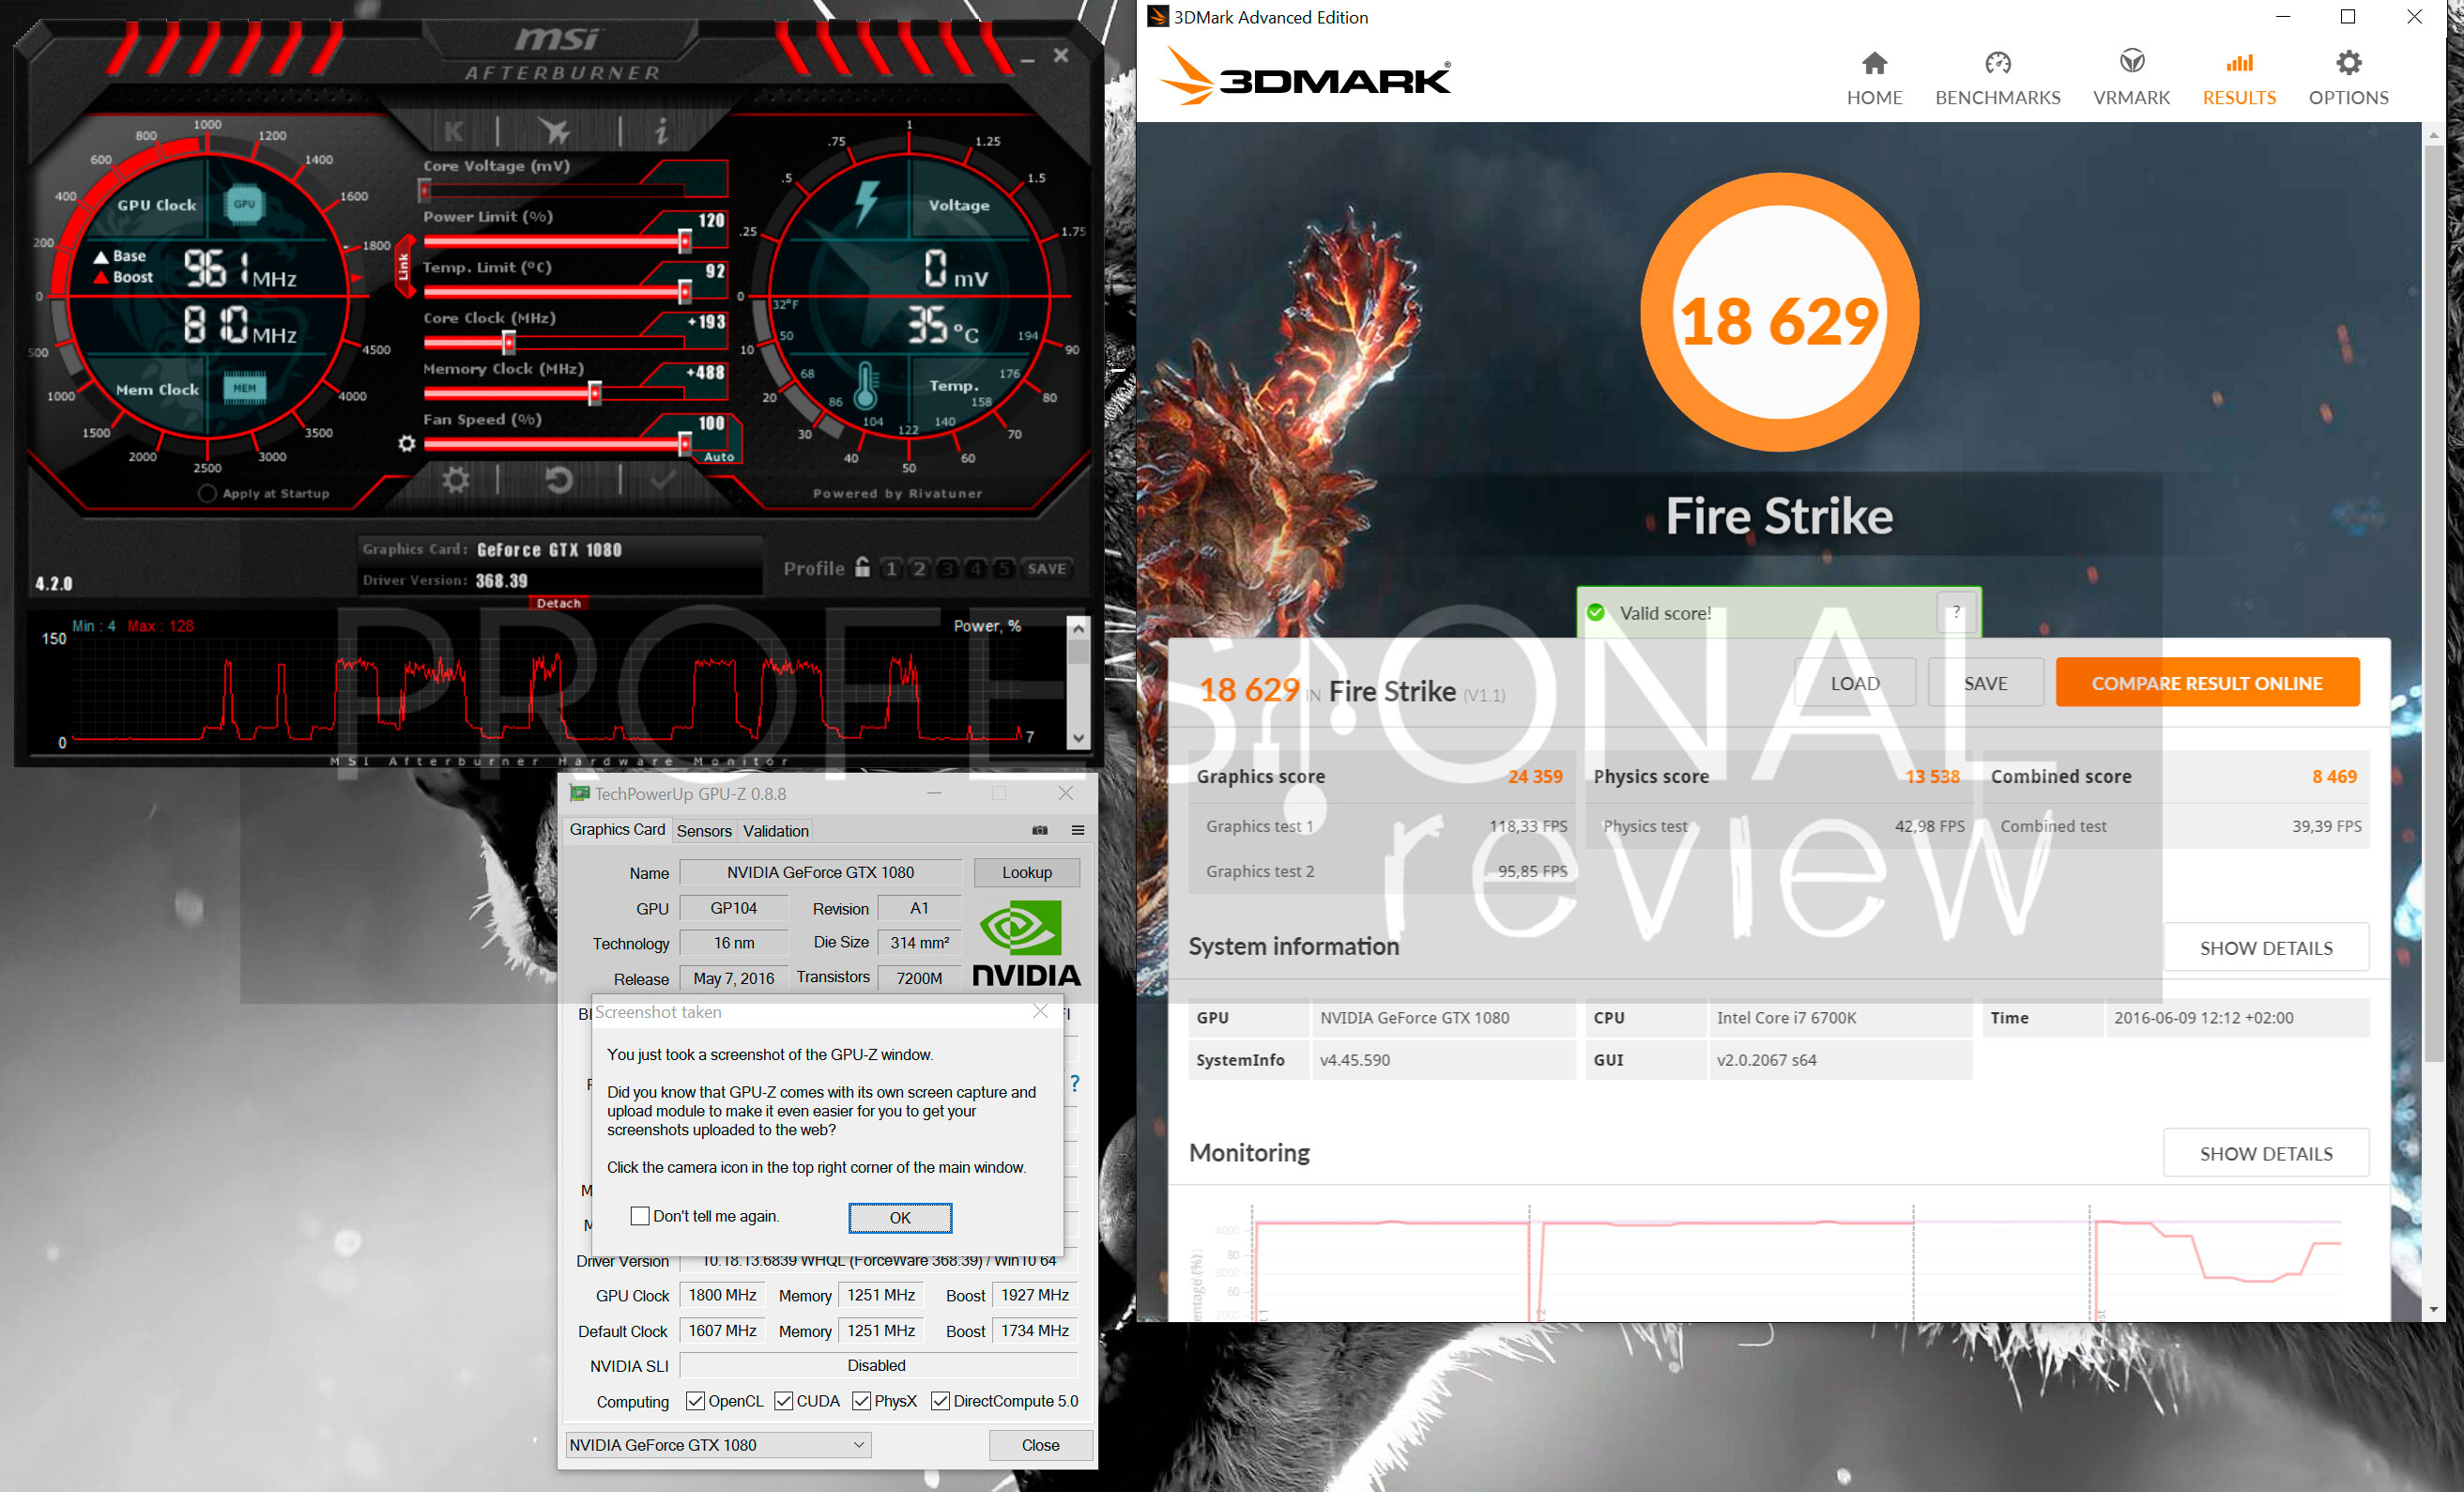 gtx1080-stock-3dmark-firestrike-normal-oc-2050